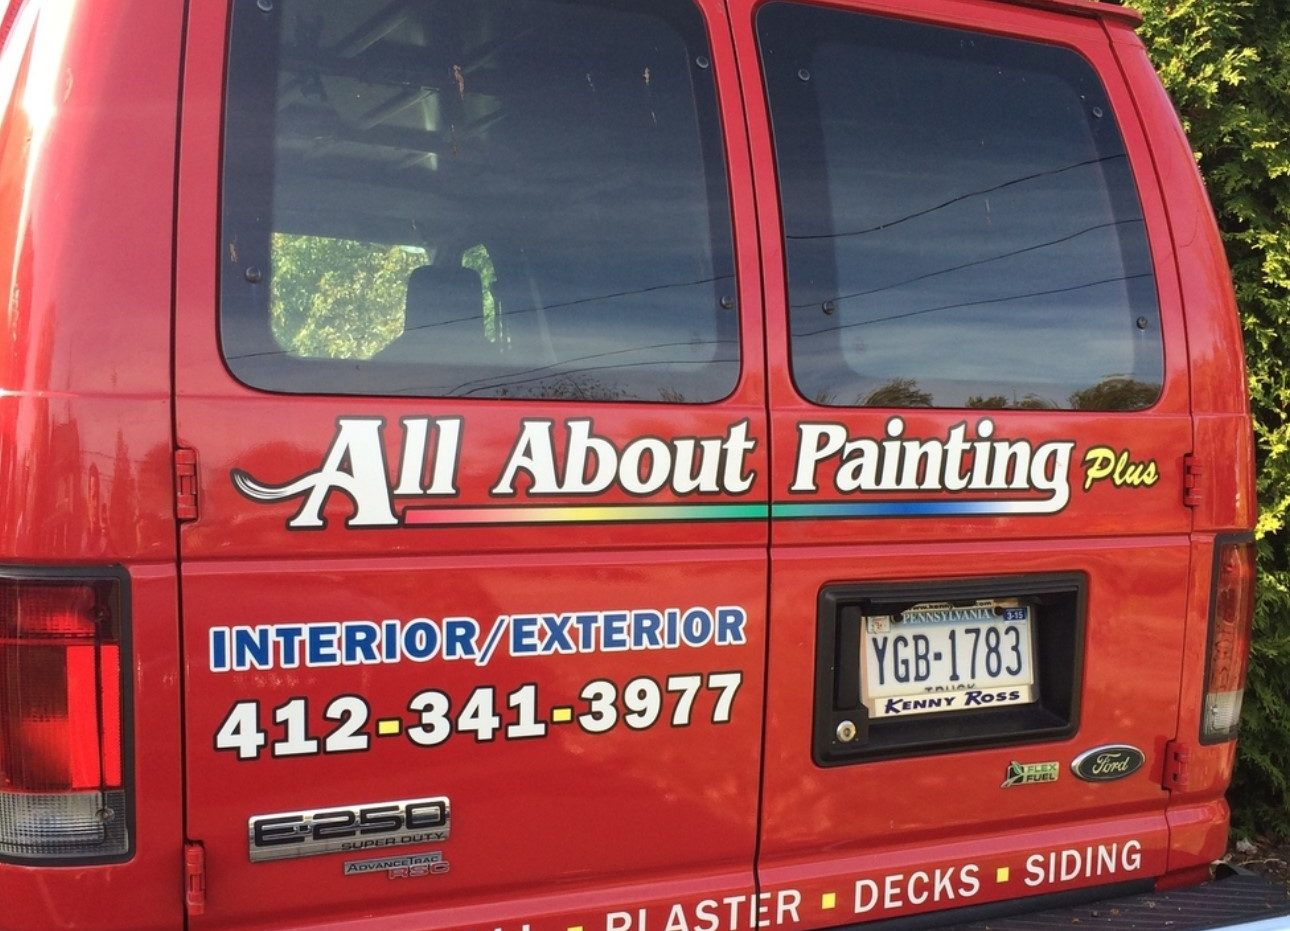 All About Painting Plus LLC